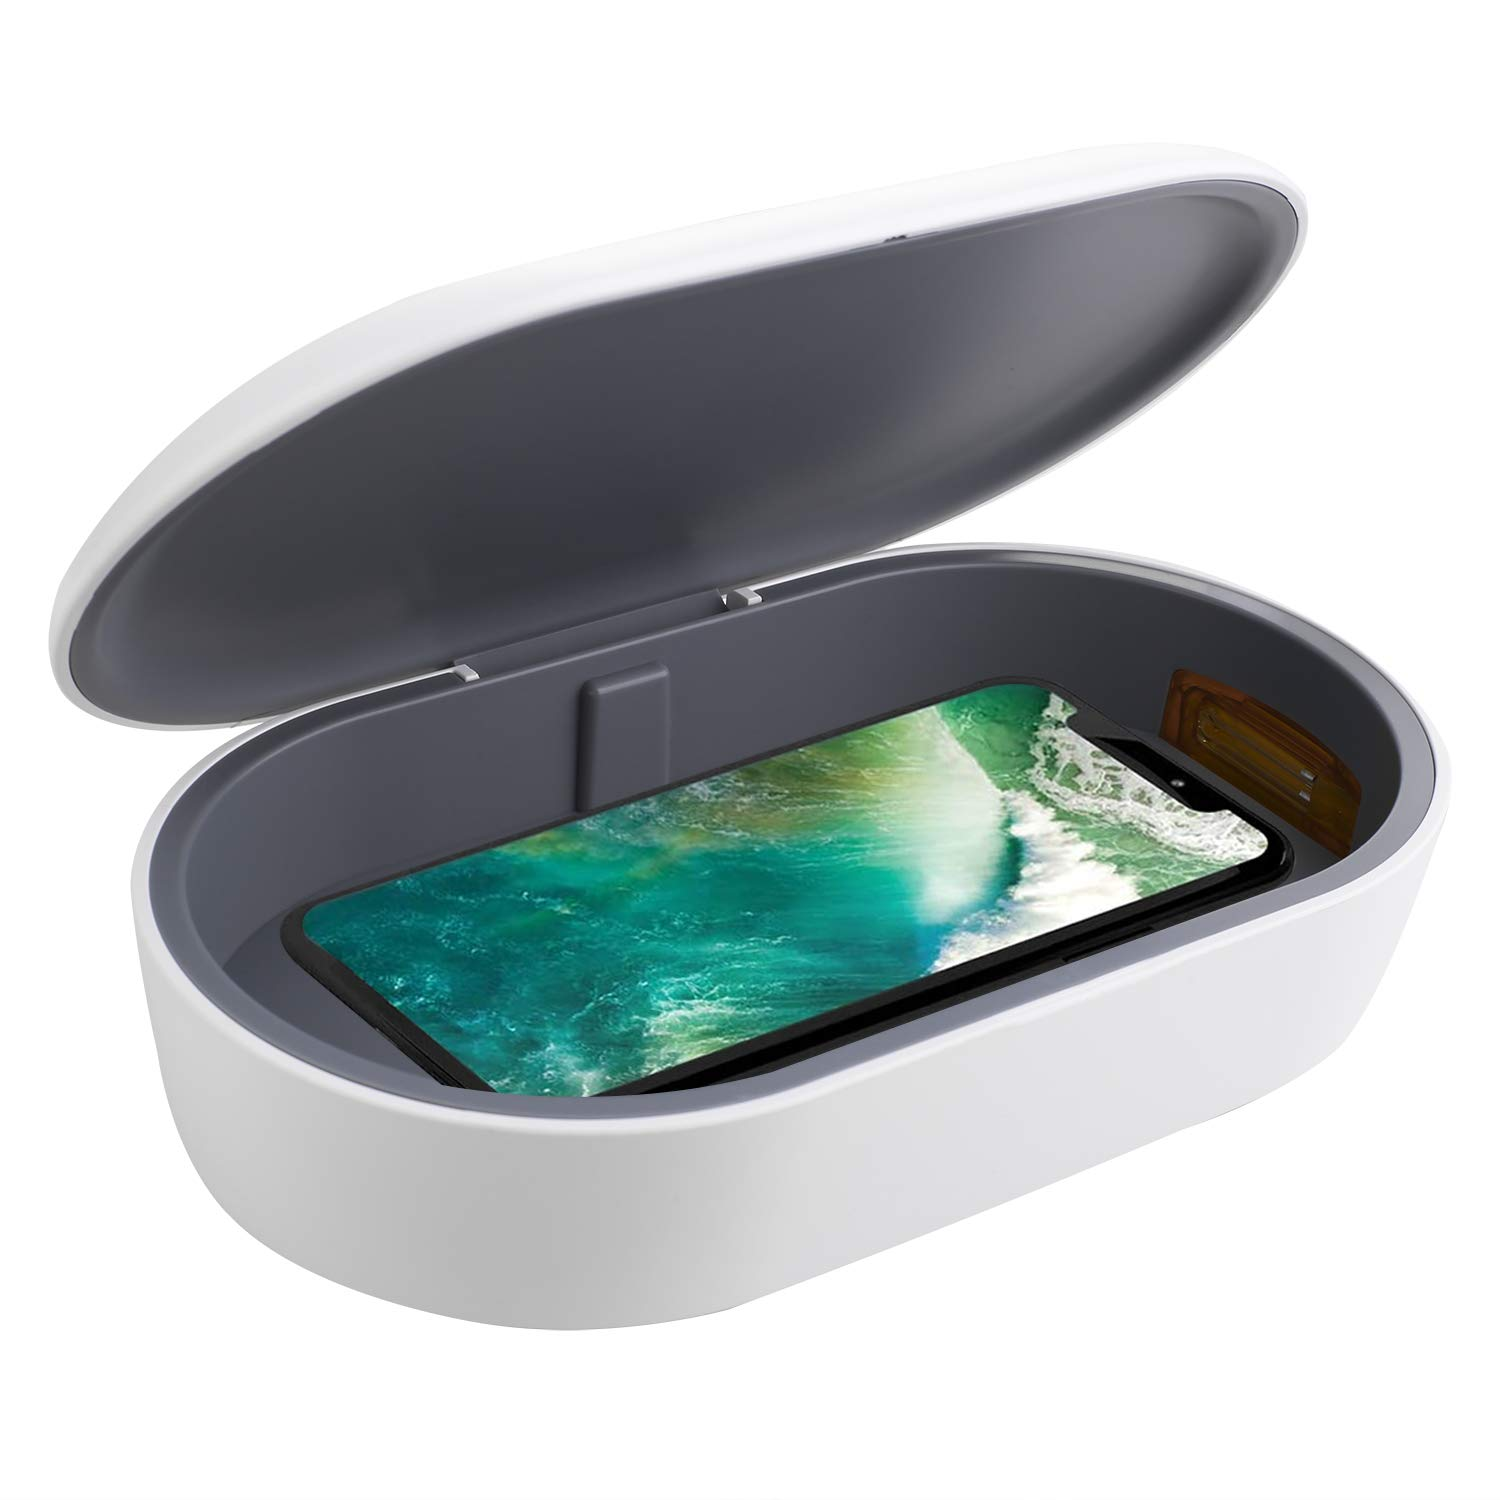 icyber Smart Phone Sanitizer Portable UV Lights Cell Phone Sanitizer Sterilizer Cleaner Box with 10W Fast Wireless Charger Aromatherapy Function Disinfector for iPhone Android Cellphone Toothbrush